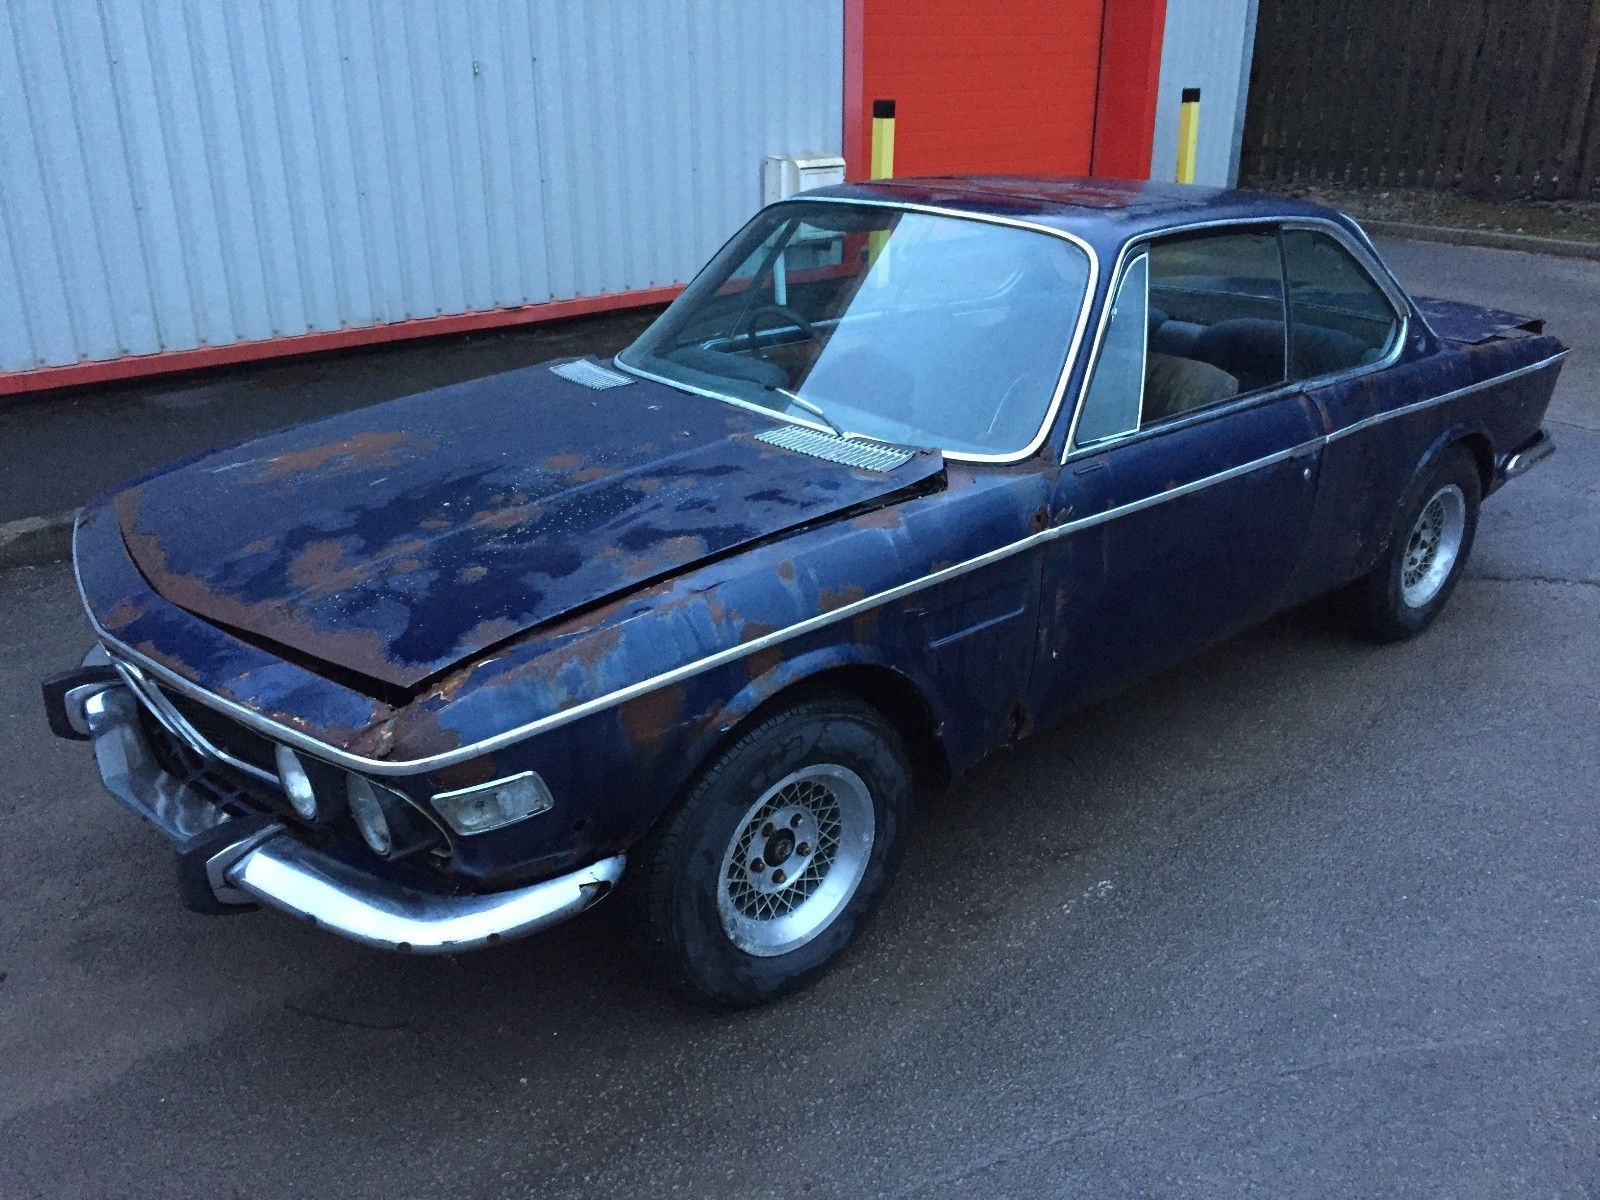 bmw E9 3.0CSl 1972 rhd uk car 3 door coupe barn find csl m3 project